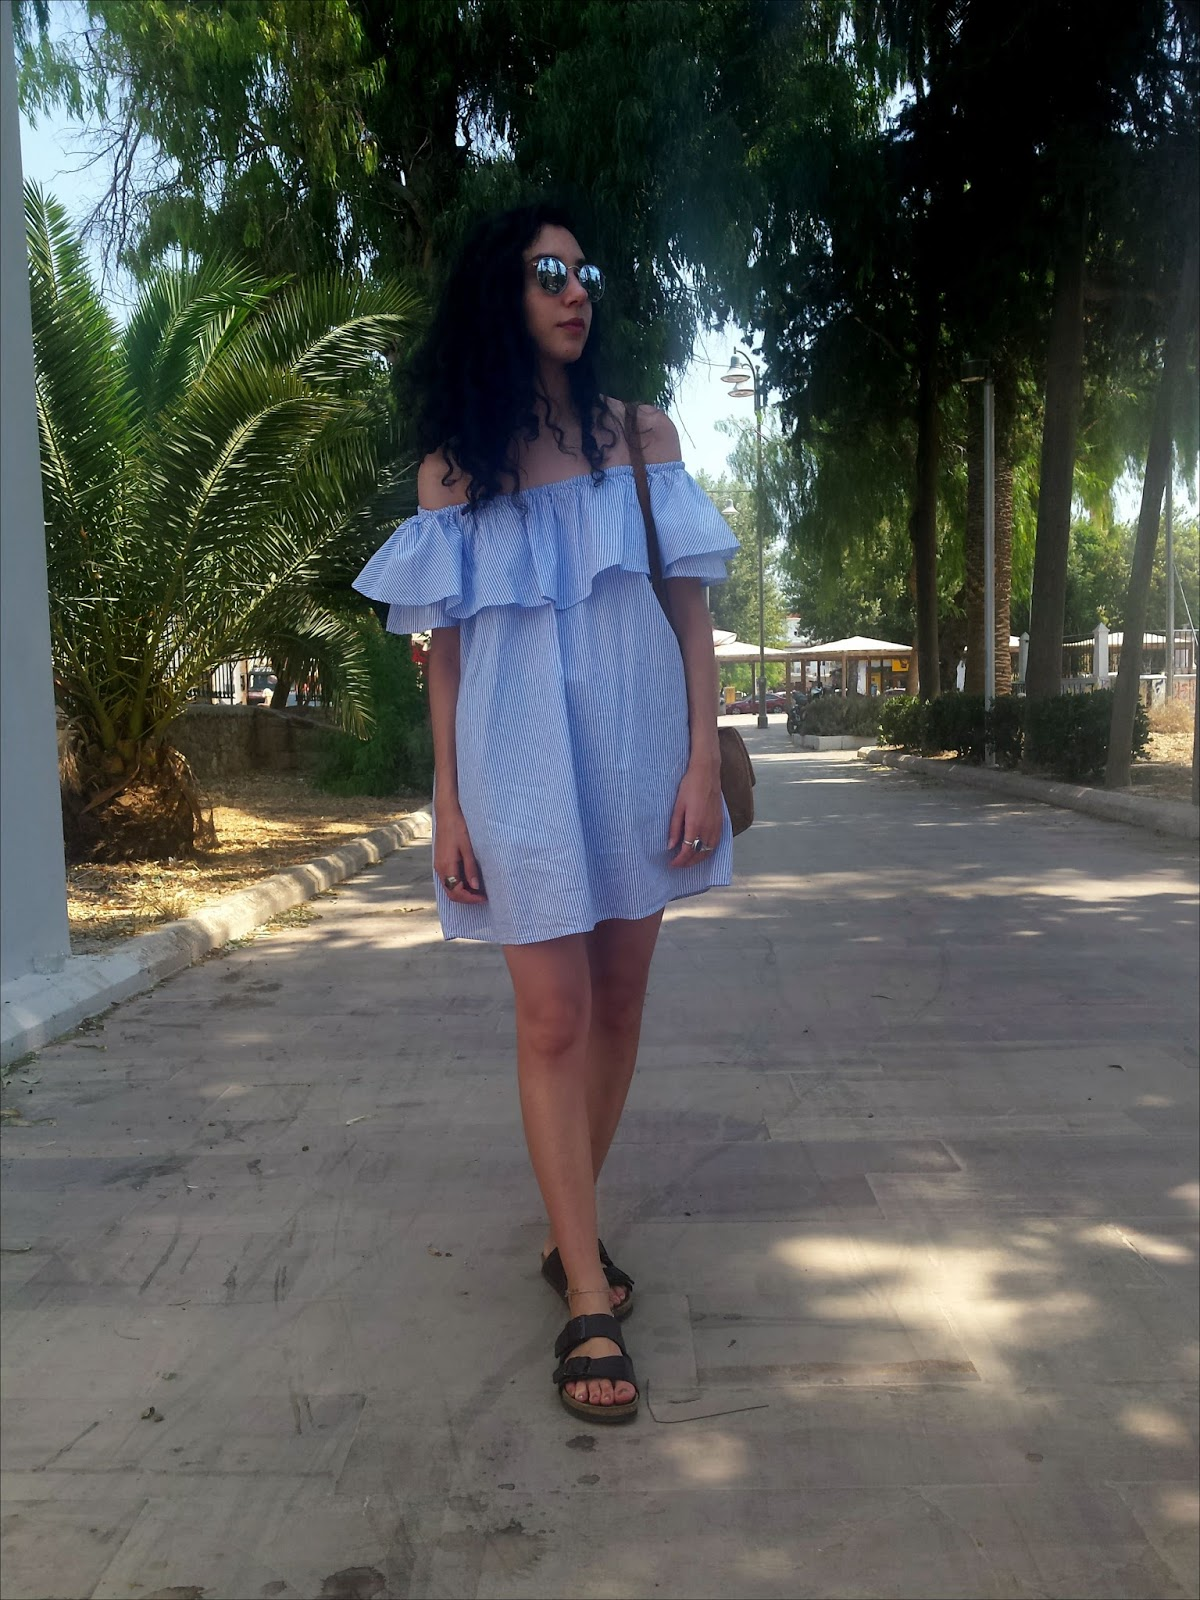 How to wear the Off-shoulder dress: As a Dress on its Own